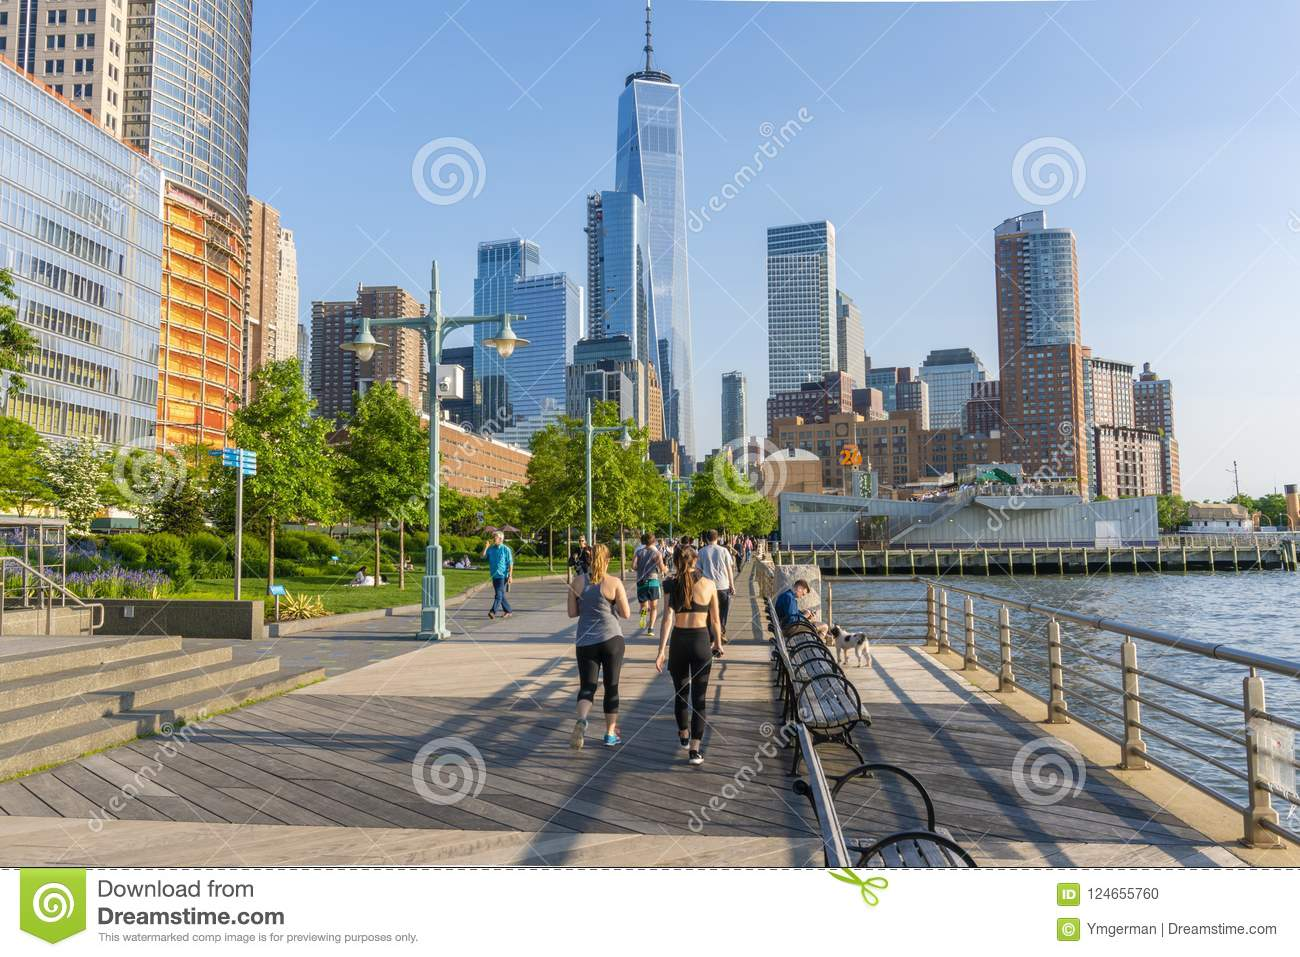 People Walking And Jogging Along The Promenade In New York City